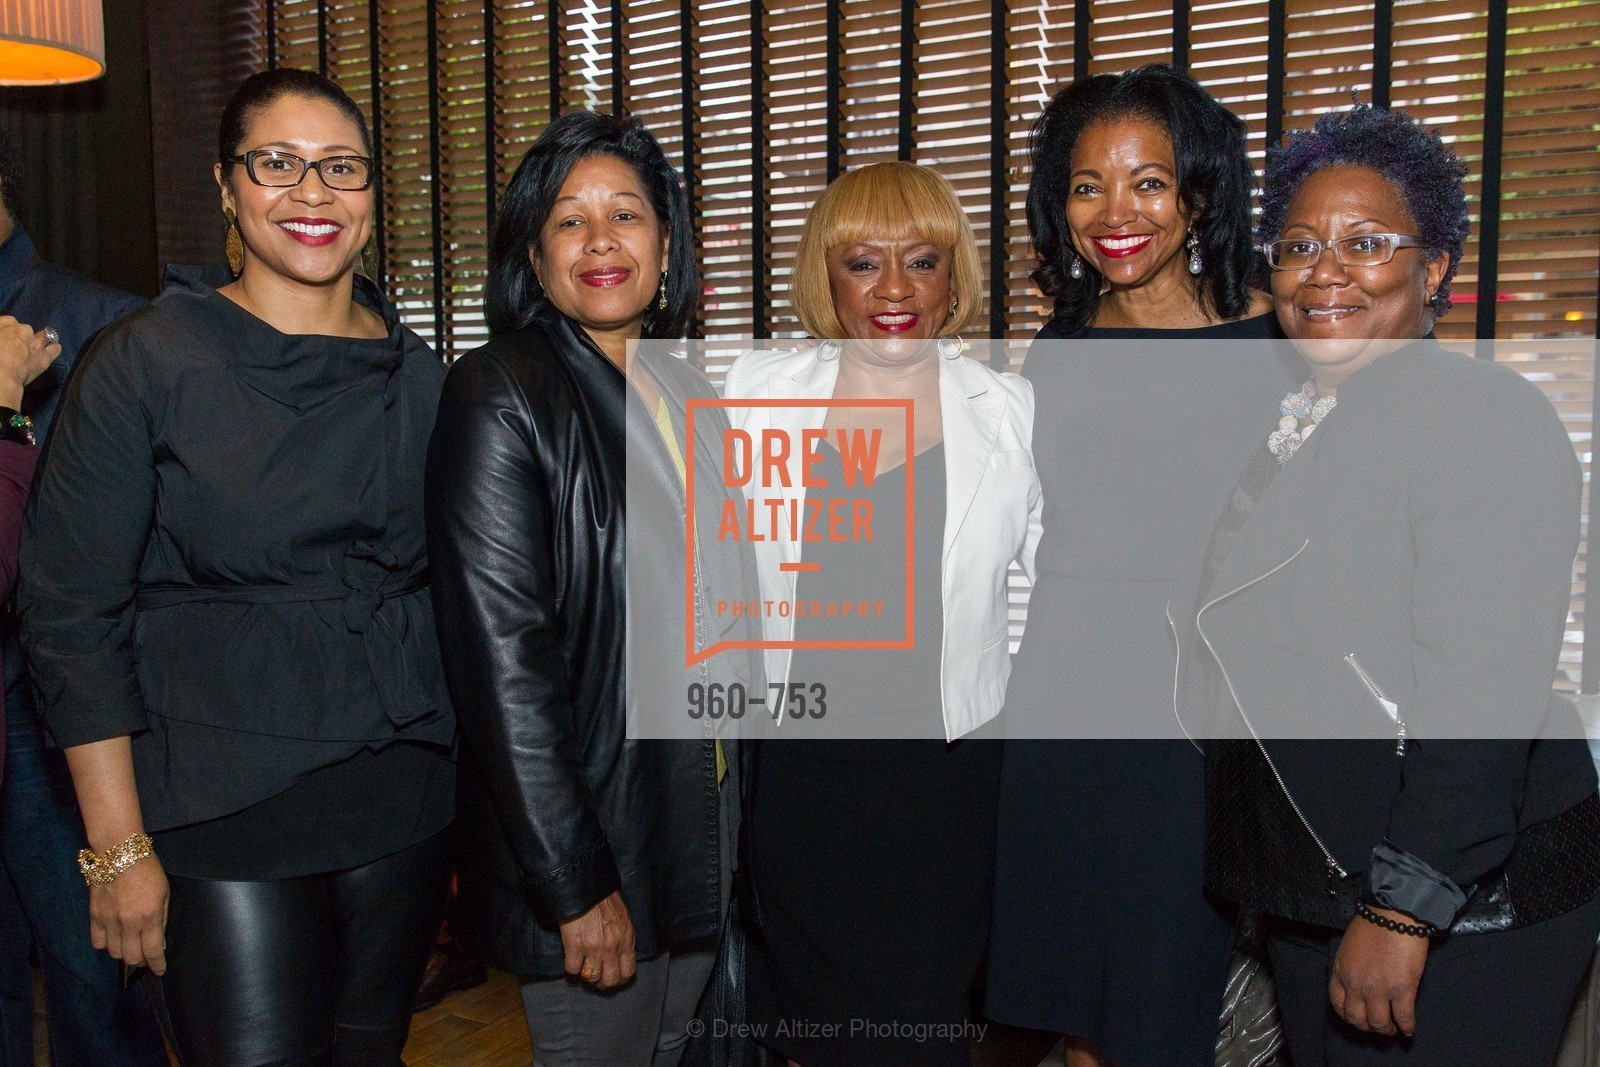 London Breed, Kimberly Brandon, Brenda Wright, Denise Bradley Tyson, Joyce Dyson, INSPIRED LUXE Launch Party Hosted by Denise Bradley Tyson, US, Matrix Fillmore, May 28th, 2015,Drew Altizer, Drew Altizer Photography, full-service agency, private events, San Francisco photographer, photographer california